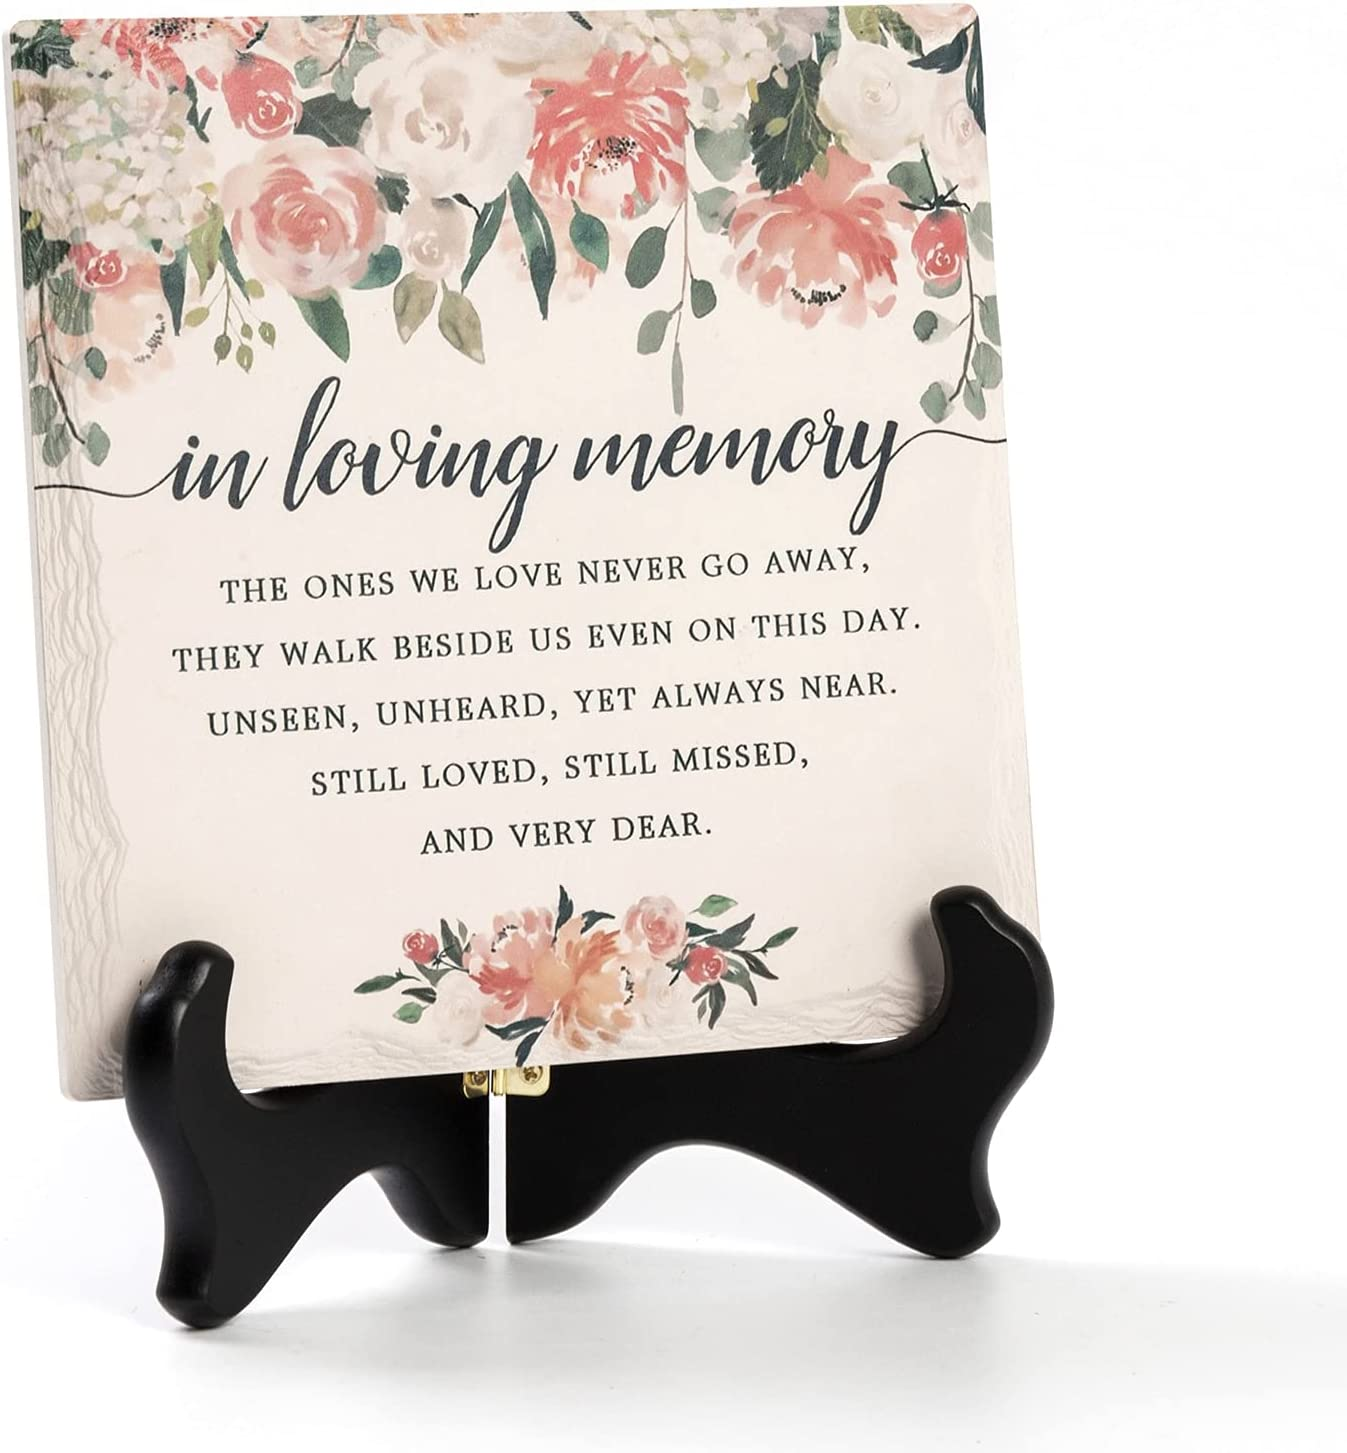 LukieJac in Loving Memory Ceramic Tile with Wooden Stand, Remembrance Sympathy Gifts for Loss of Loved One- Bereavement/Condolences/Grief Gifts-Funeral Decor Sorry for Your Loss -Flowers(3 Options)